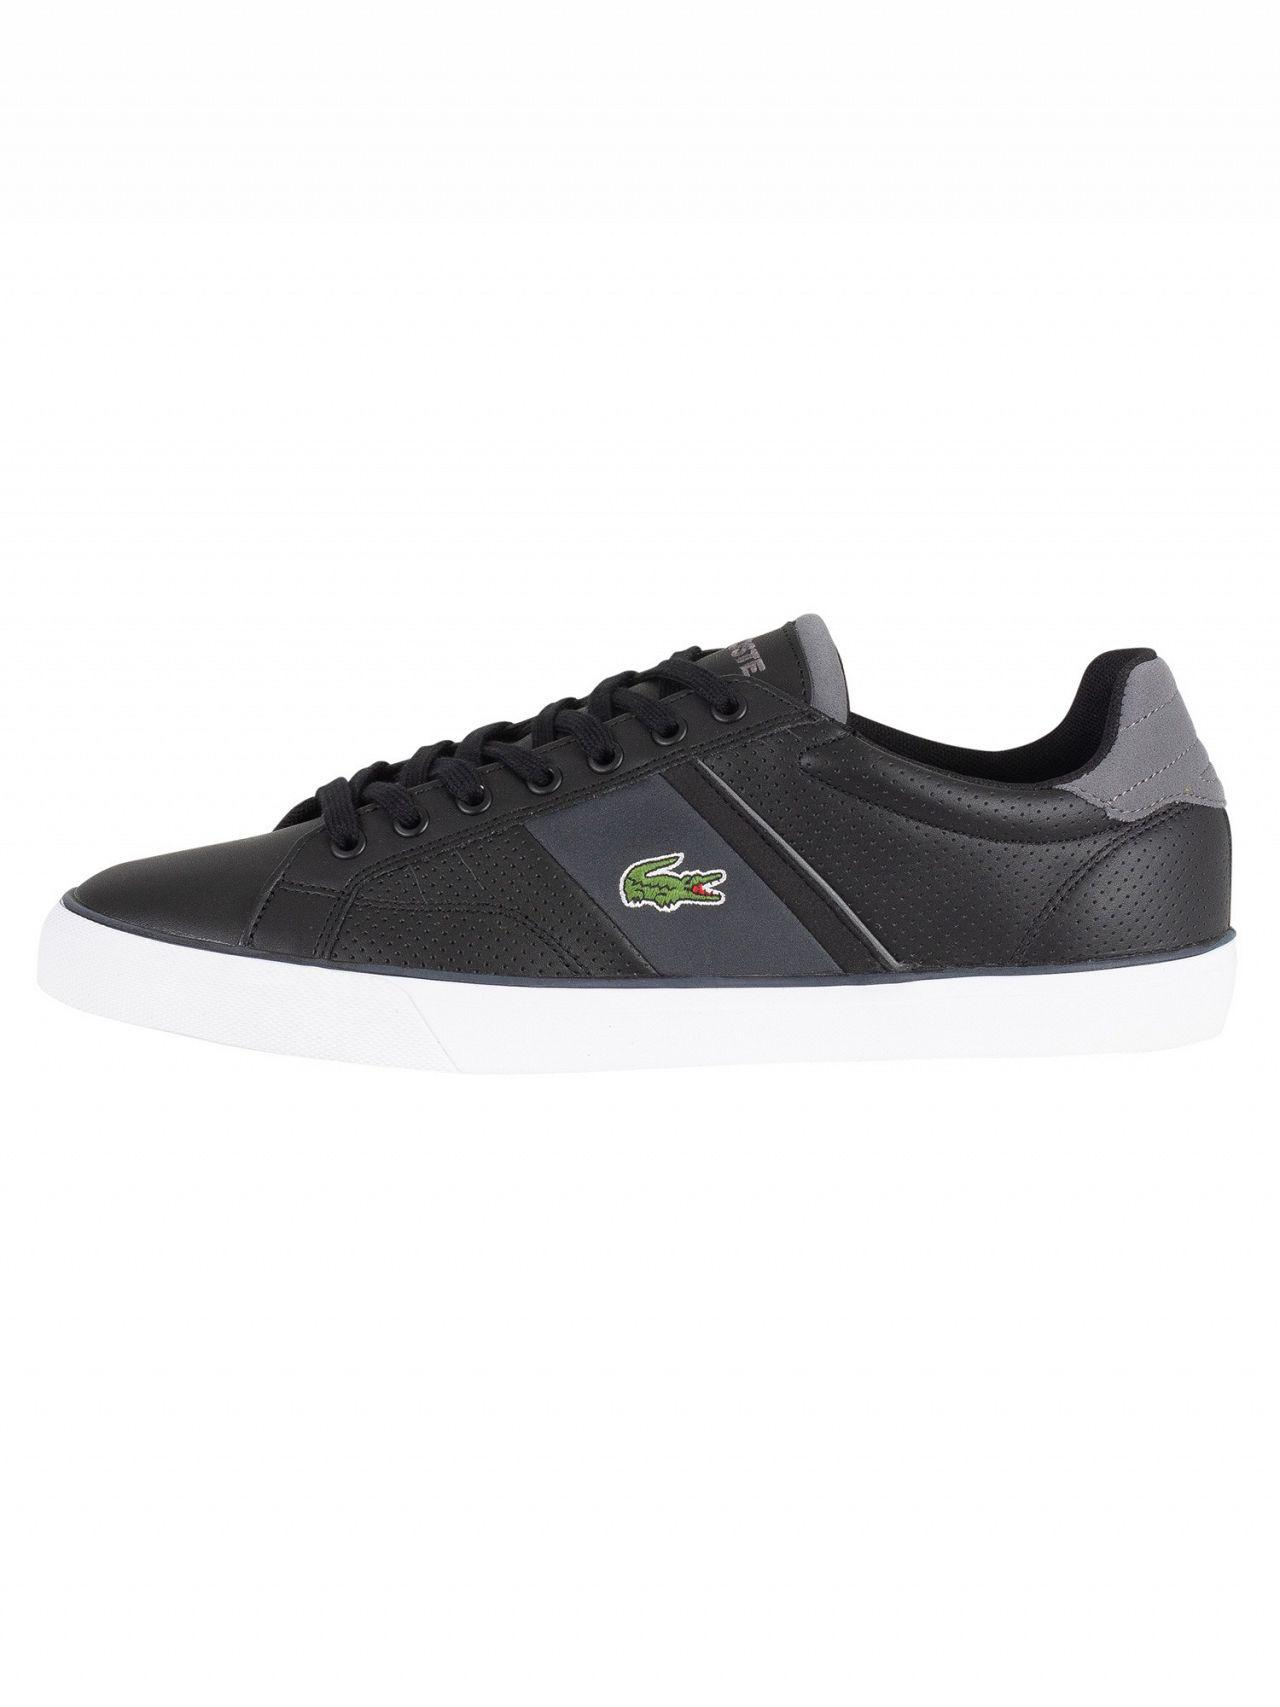 dbbe51645 Lacoste Black dark Grey Fairlead 118 1 Cam Leather Trainers in Black for Men  - Lyst